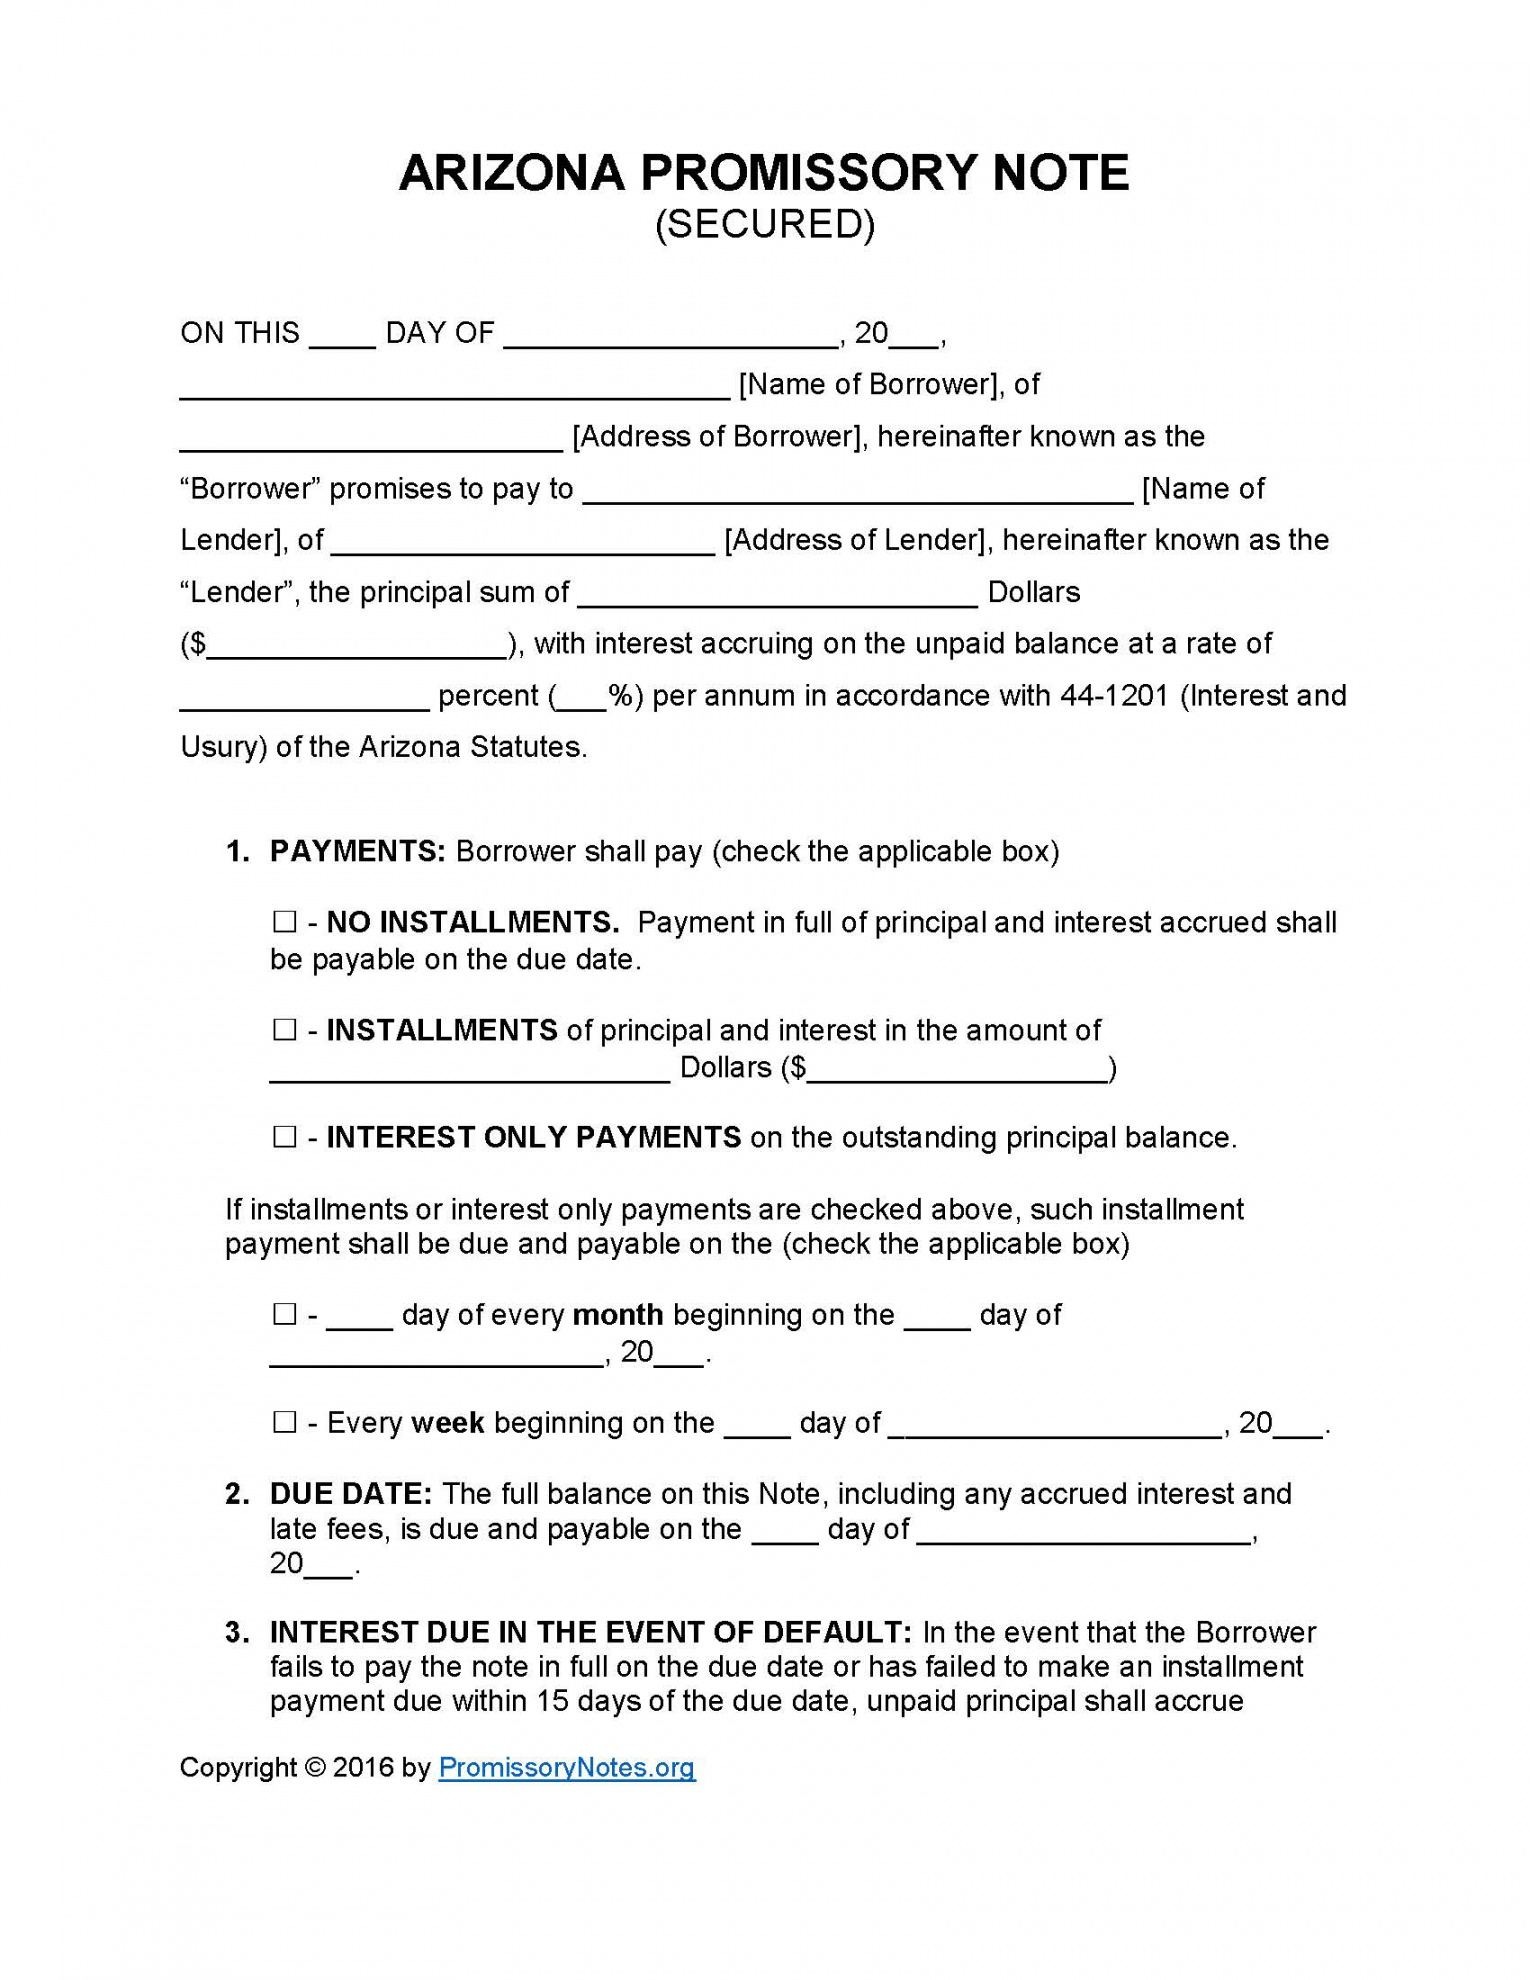 sample arizona secured promissory note template  promissory notes arizona promissory note template